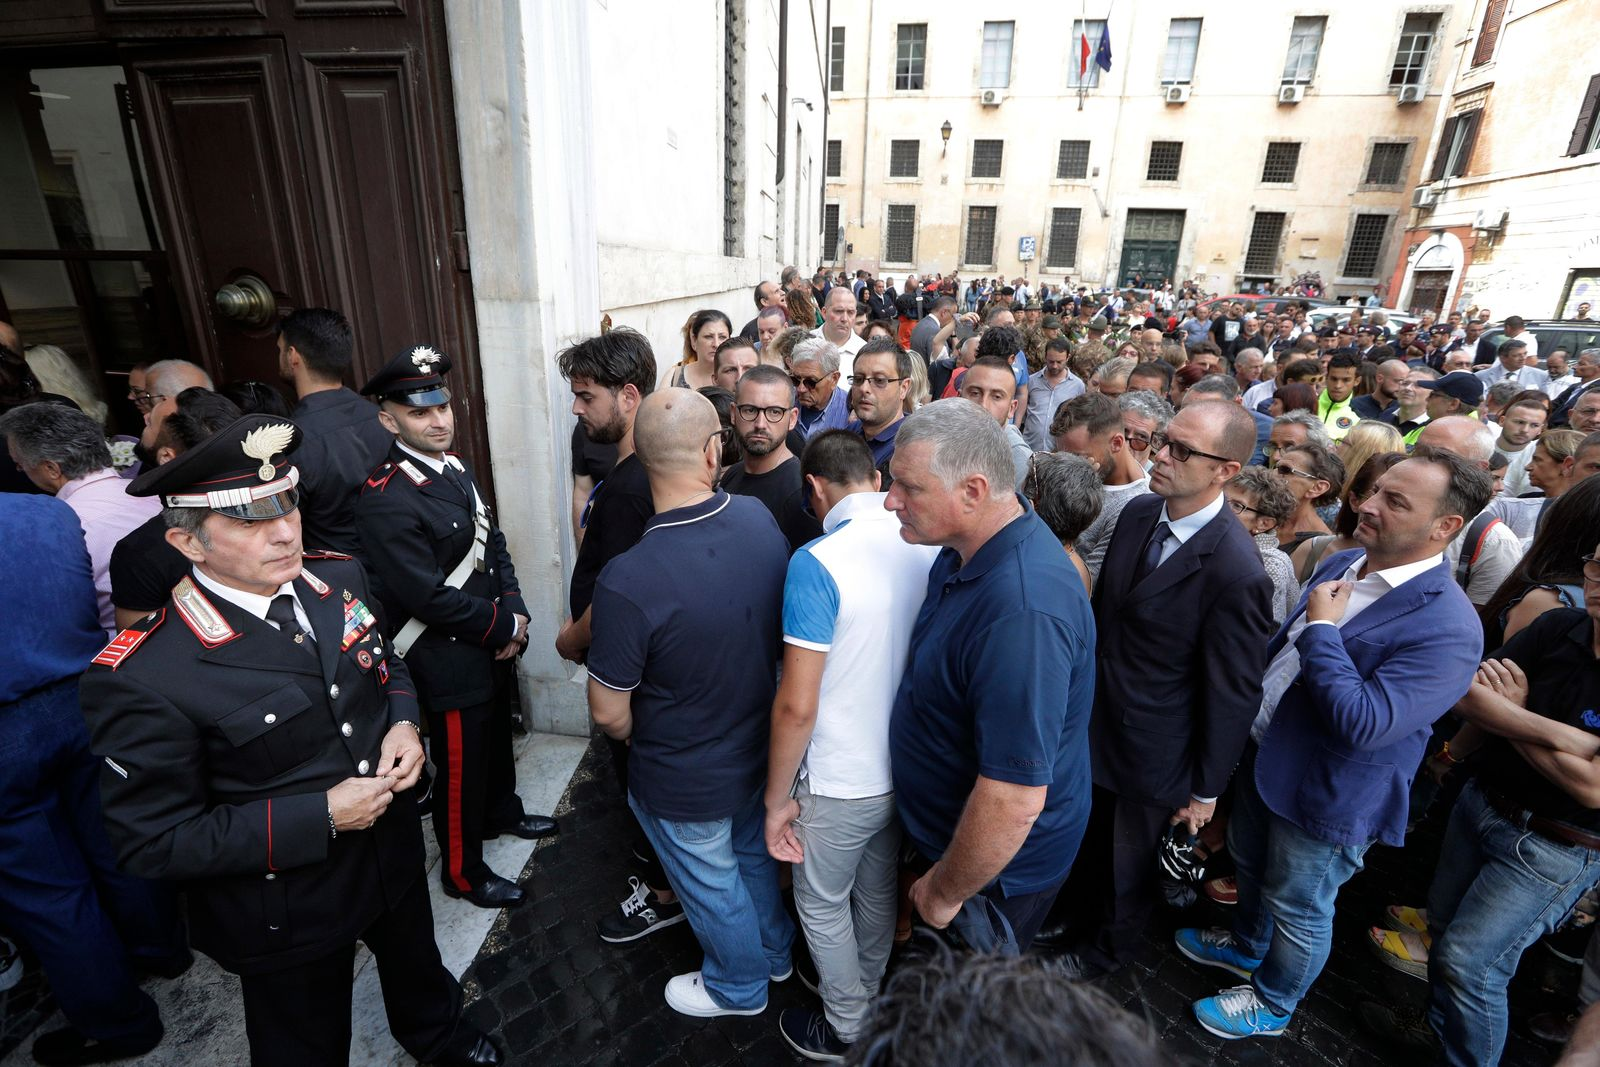 People arrive to pay respect in the church where Carabinieri officer Mario Cerciello Rega was laid in state, in Rome, Sunday, July 28, 2019. In a statement Saturday, Carabinieri officers investigating the death of Cerciello Rega, 35, said two young American tourists have been detained for alleged murder and attempted extortion. (AP Photo/Andrew Medichini)